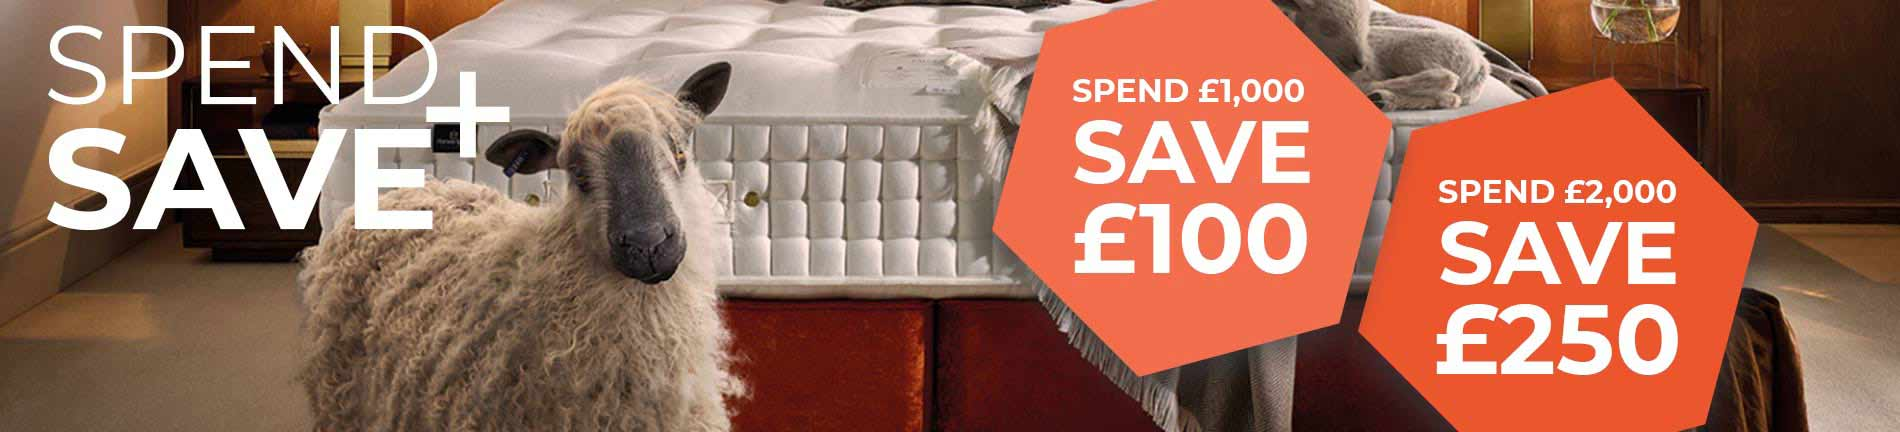 Bristol Beds and Mattresses Spend and Save Banner